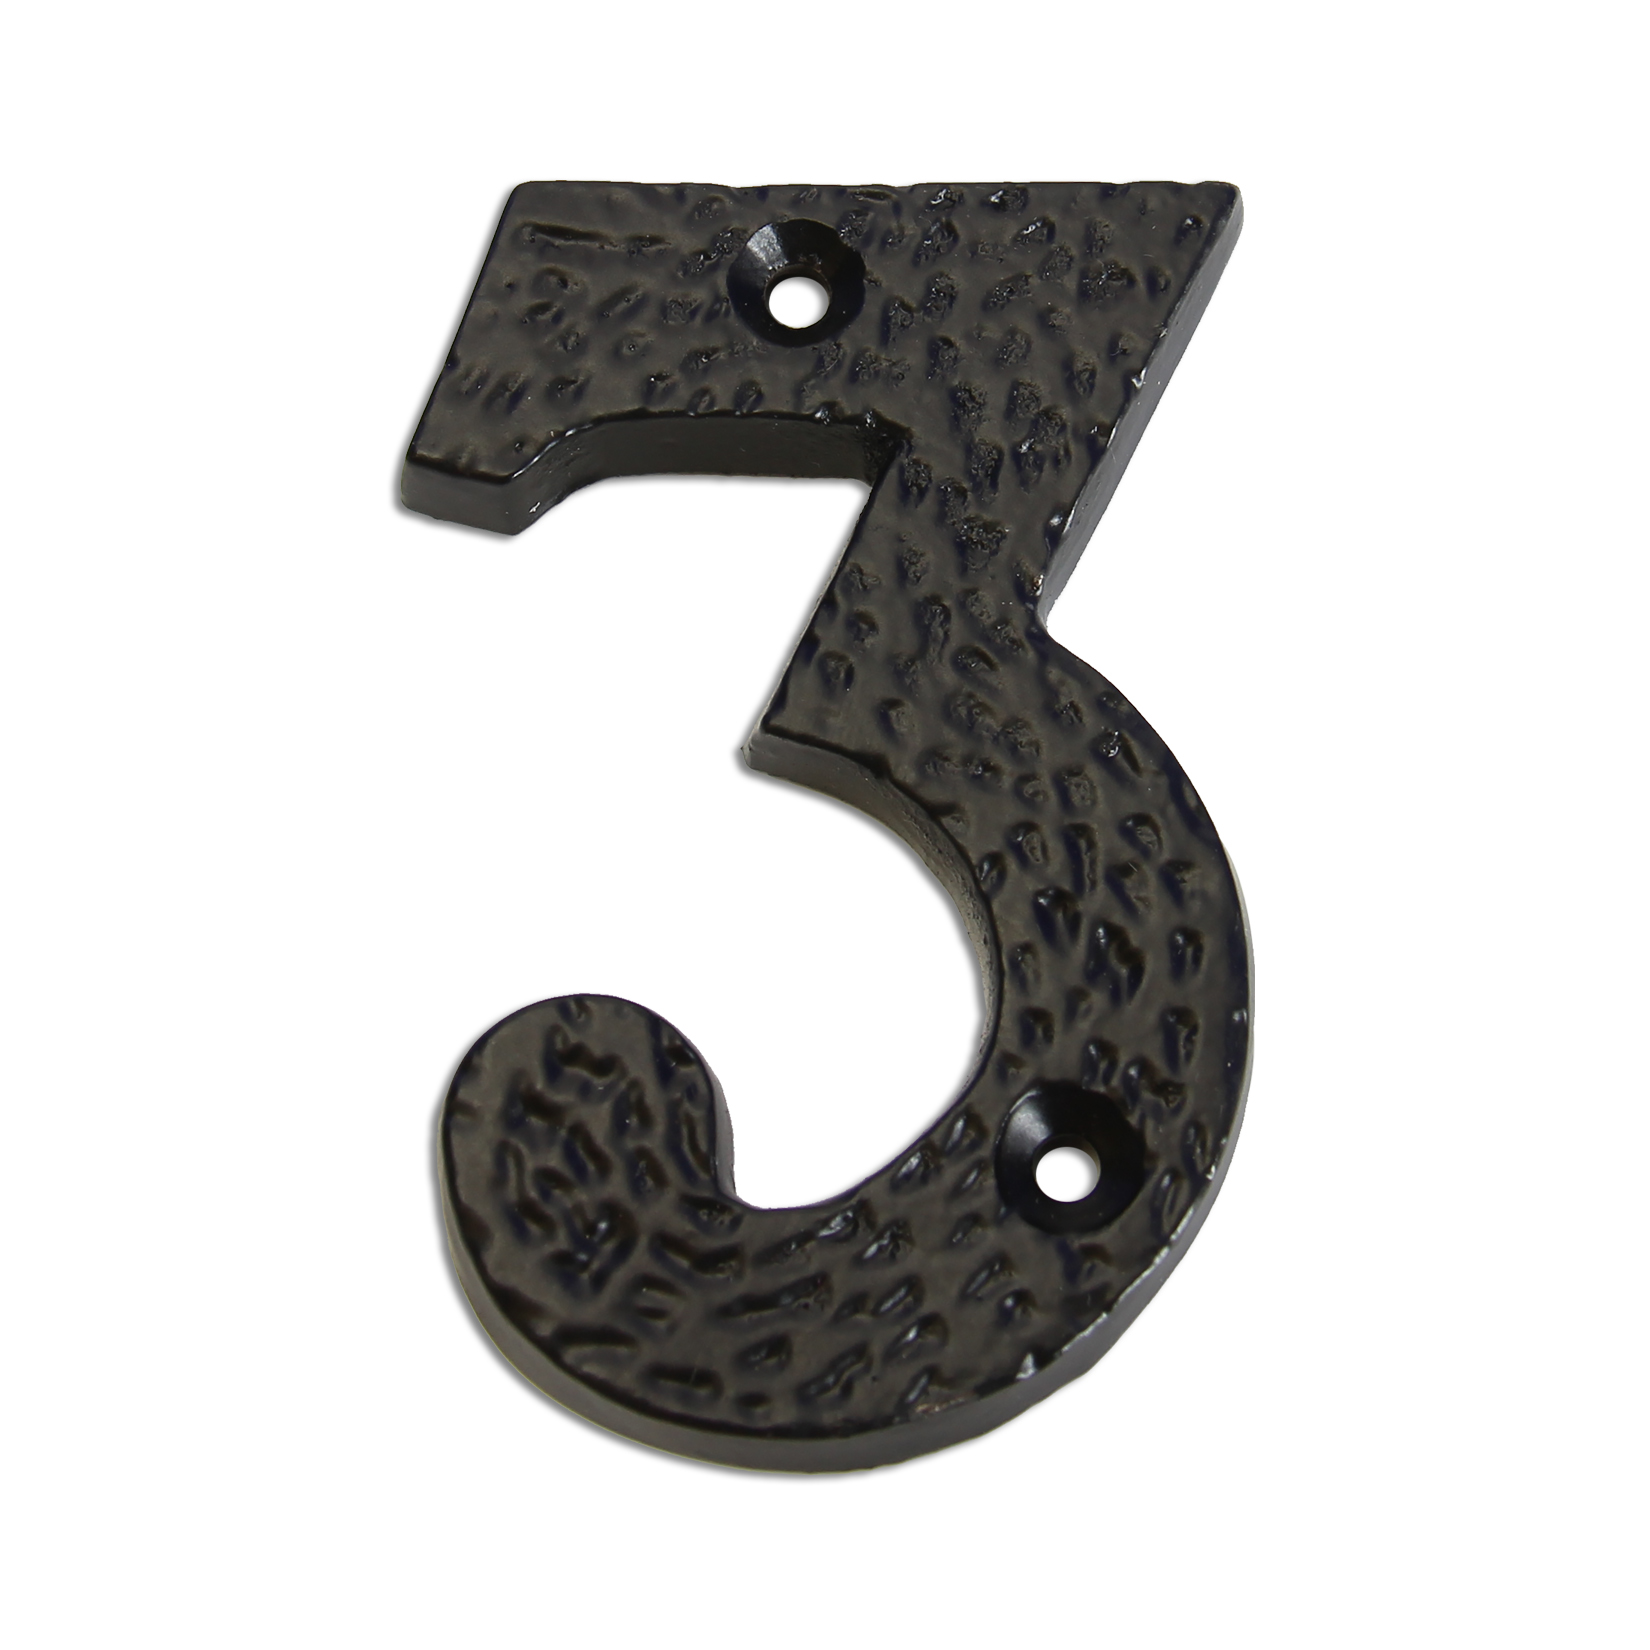 3-inch iron metal house number in iron black finish - metal number 3